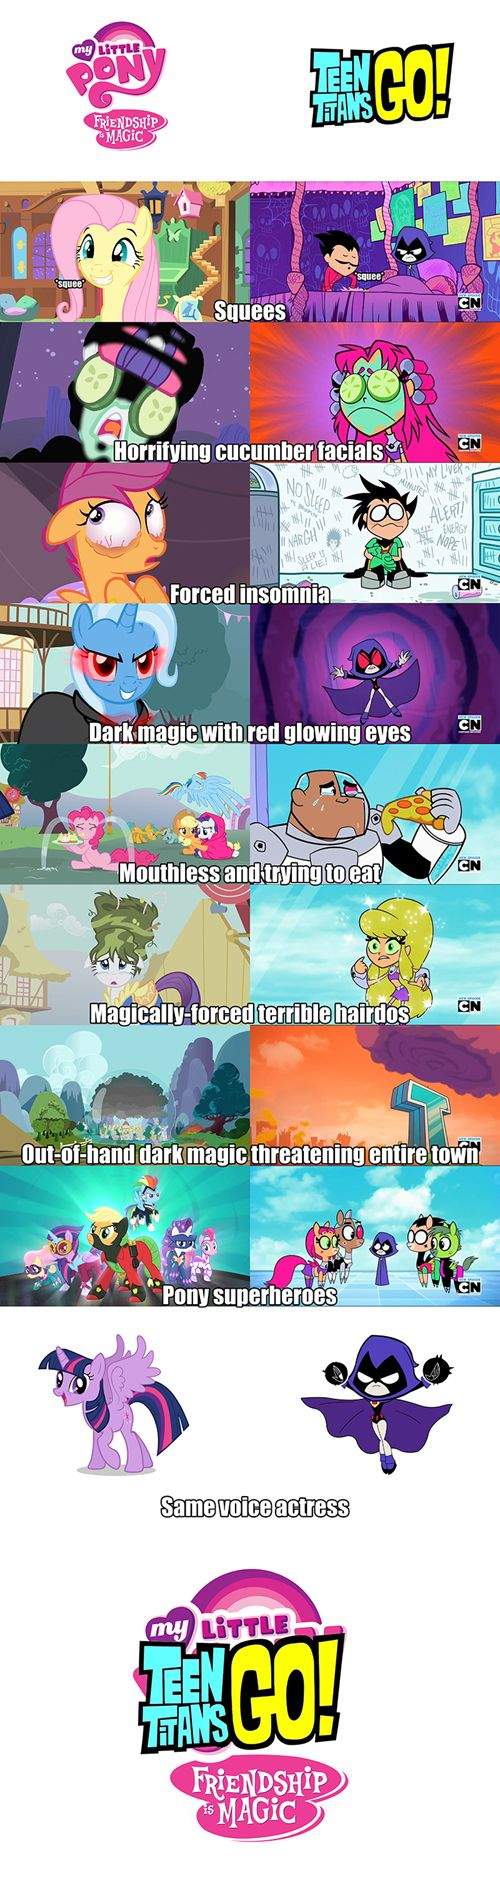 They're Basically The Same Show>>> Actually TTG is stupid and pointless and that's all the show is about. The stupid antics. MLP incorporates the funny antics but it's not all about being stupid. MAJOR DIFFERENCE PEOPLE!